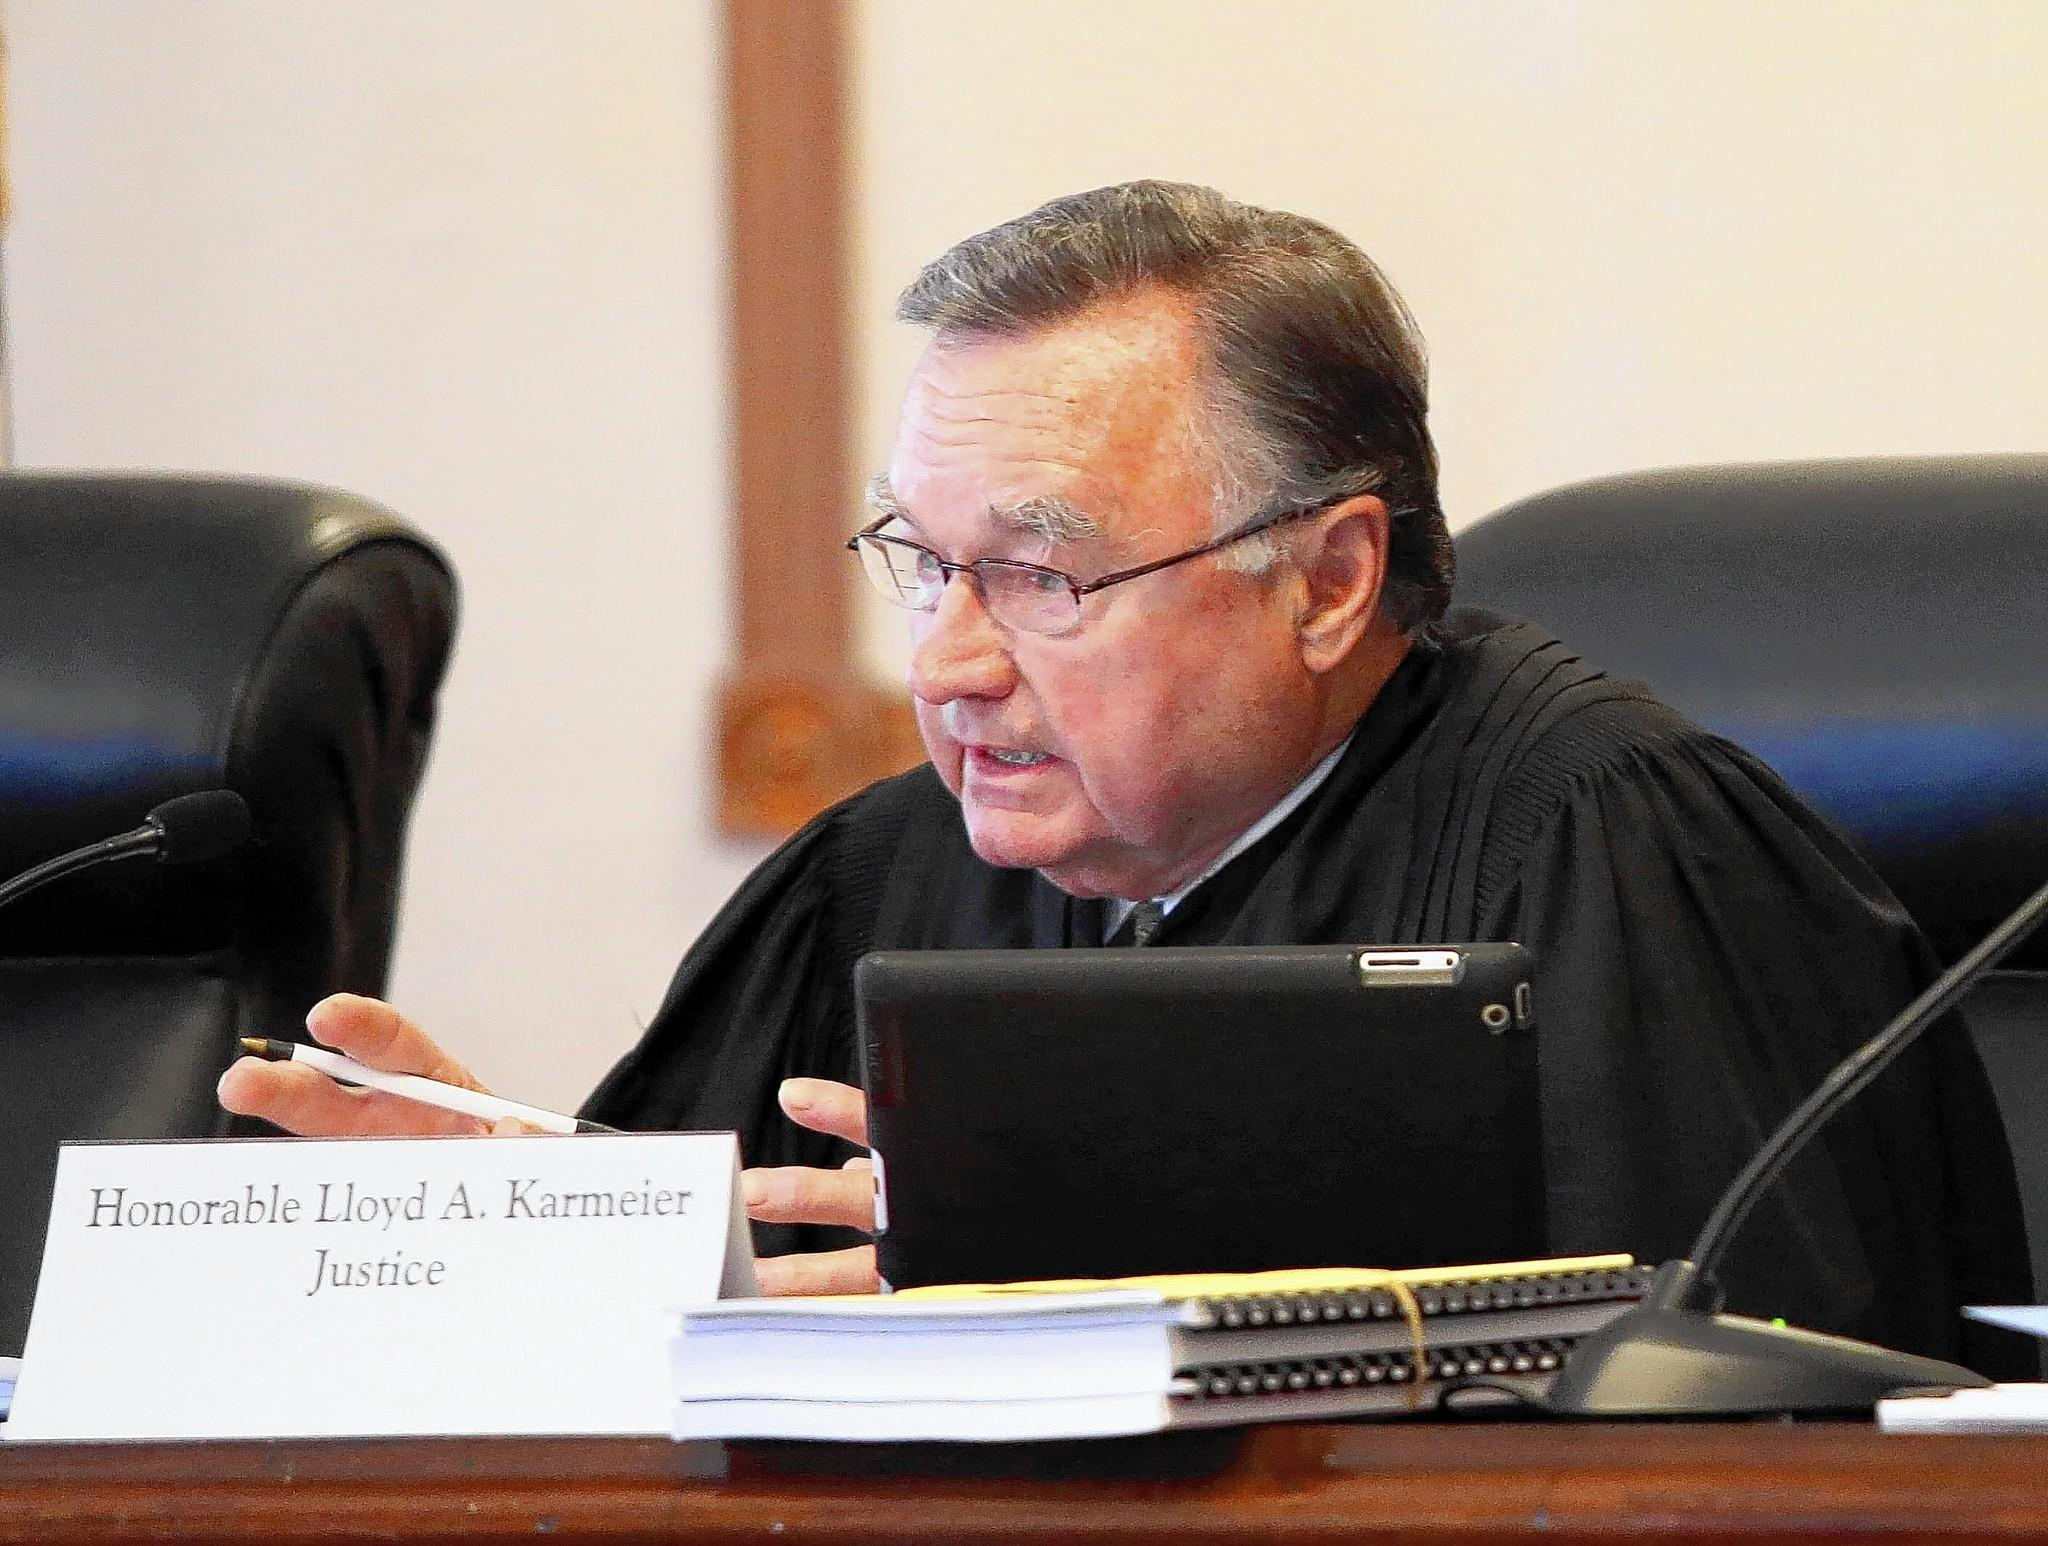 """A lawyer has asked Illinois Supreme Court Justice Lloyd Karmeier to recuse himself from the revived """"light"""" cigarette case because the lawyer alleges that Philip Morris helped get Karmeier elected to the high court in 2004."""